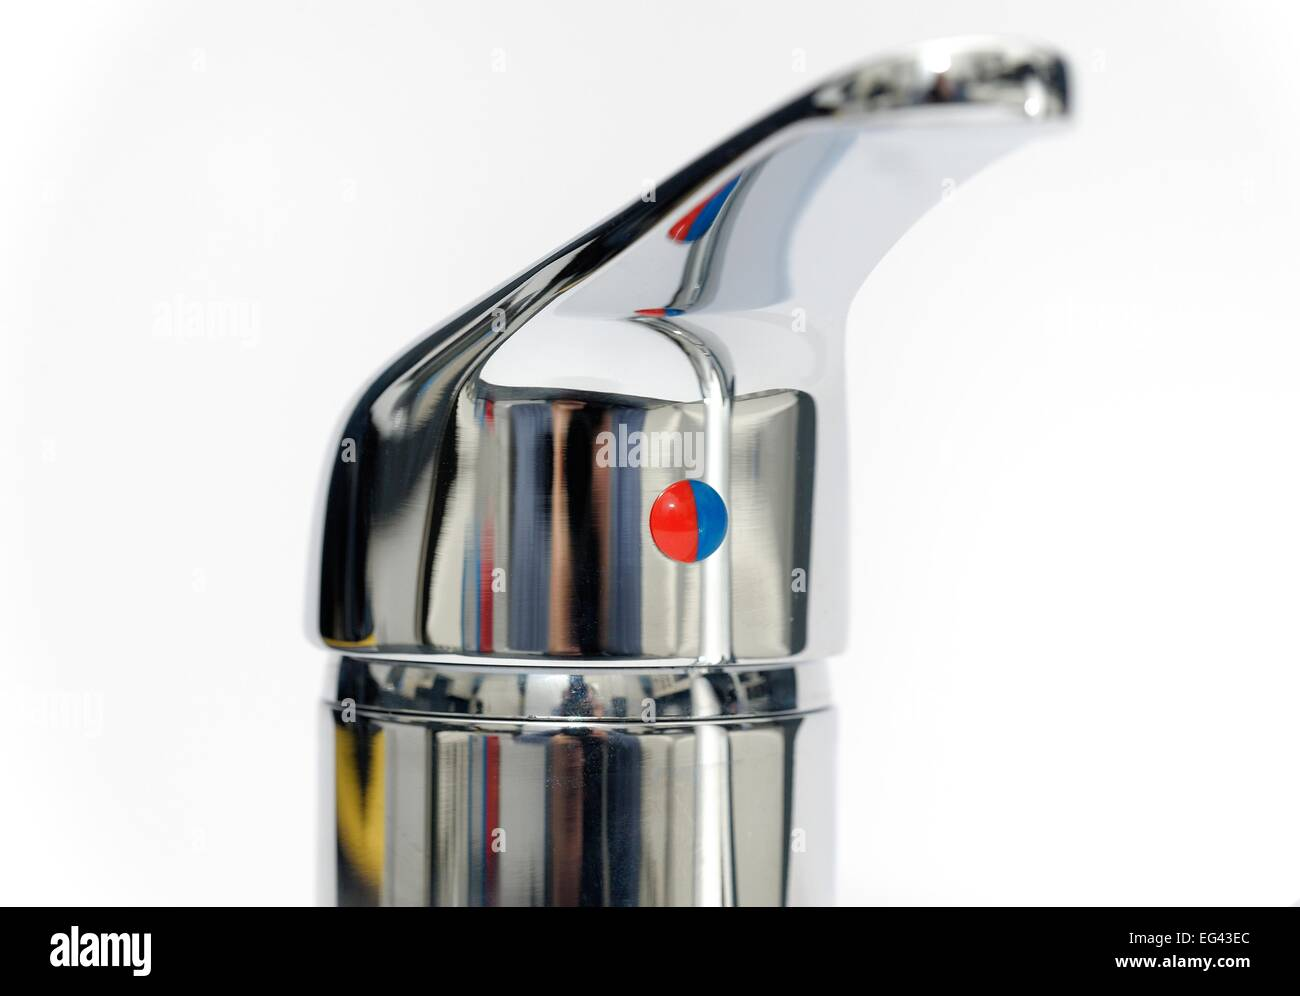 A red and blue indicator on a domestic kitchen tap red for hot and blue for cold England UK - Stock Image